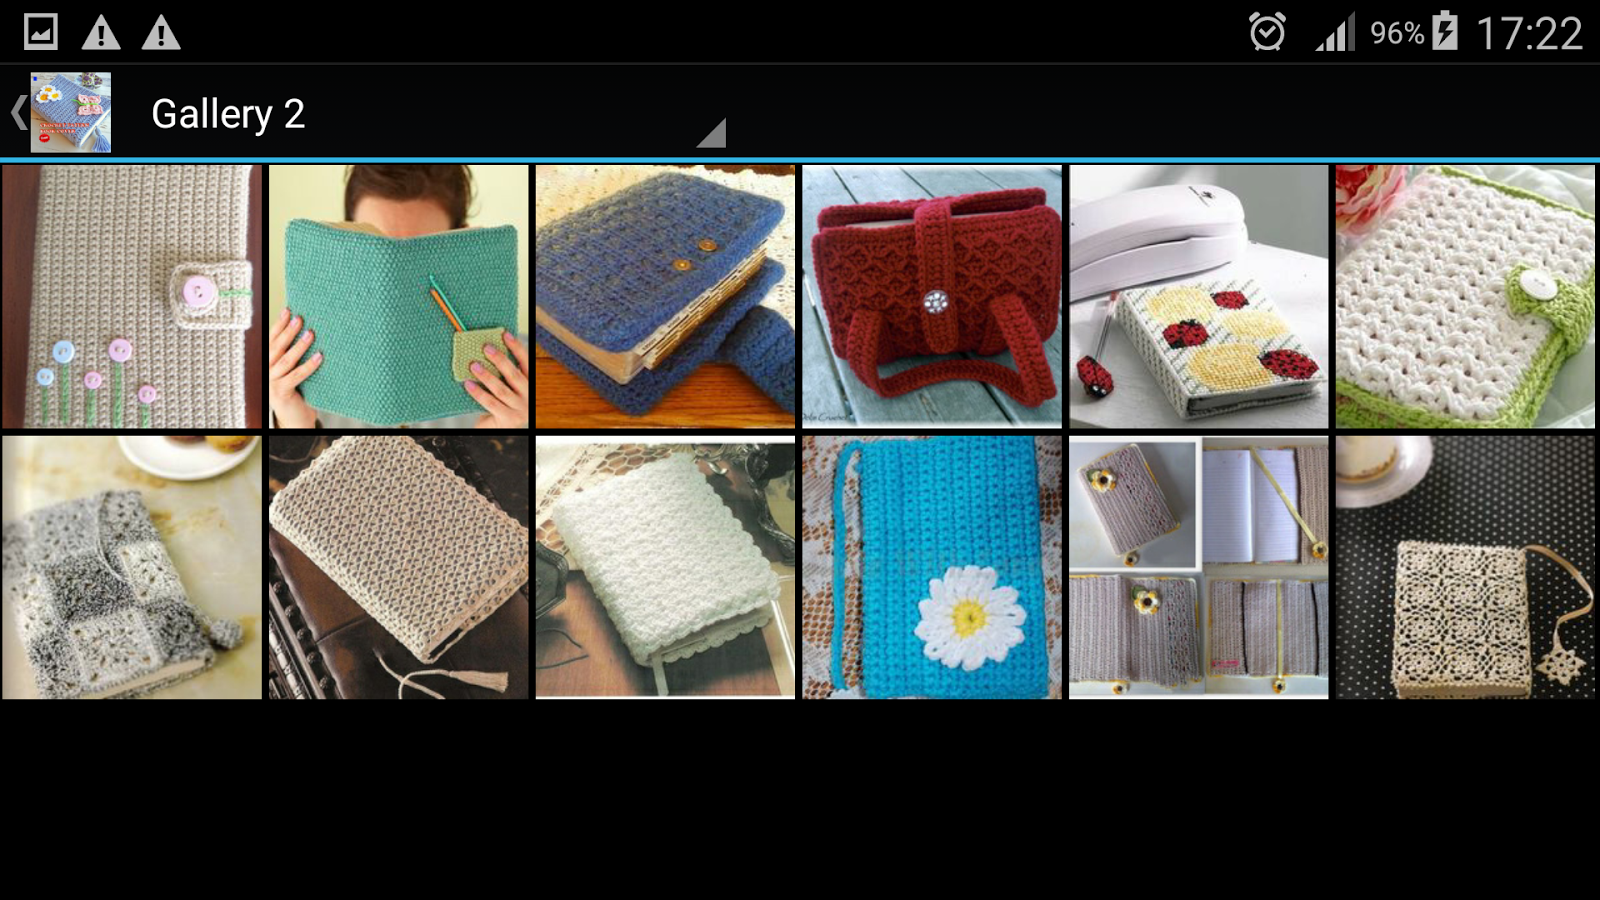 Crochet pattern book cover android apps on google play crochet pattern book cover screenshot bankloansurffo Image collections